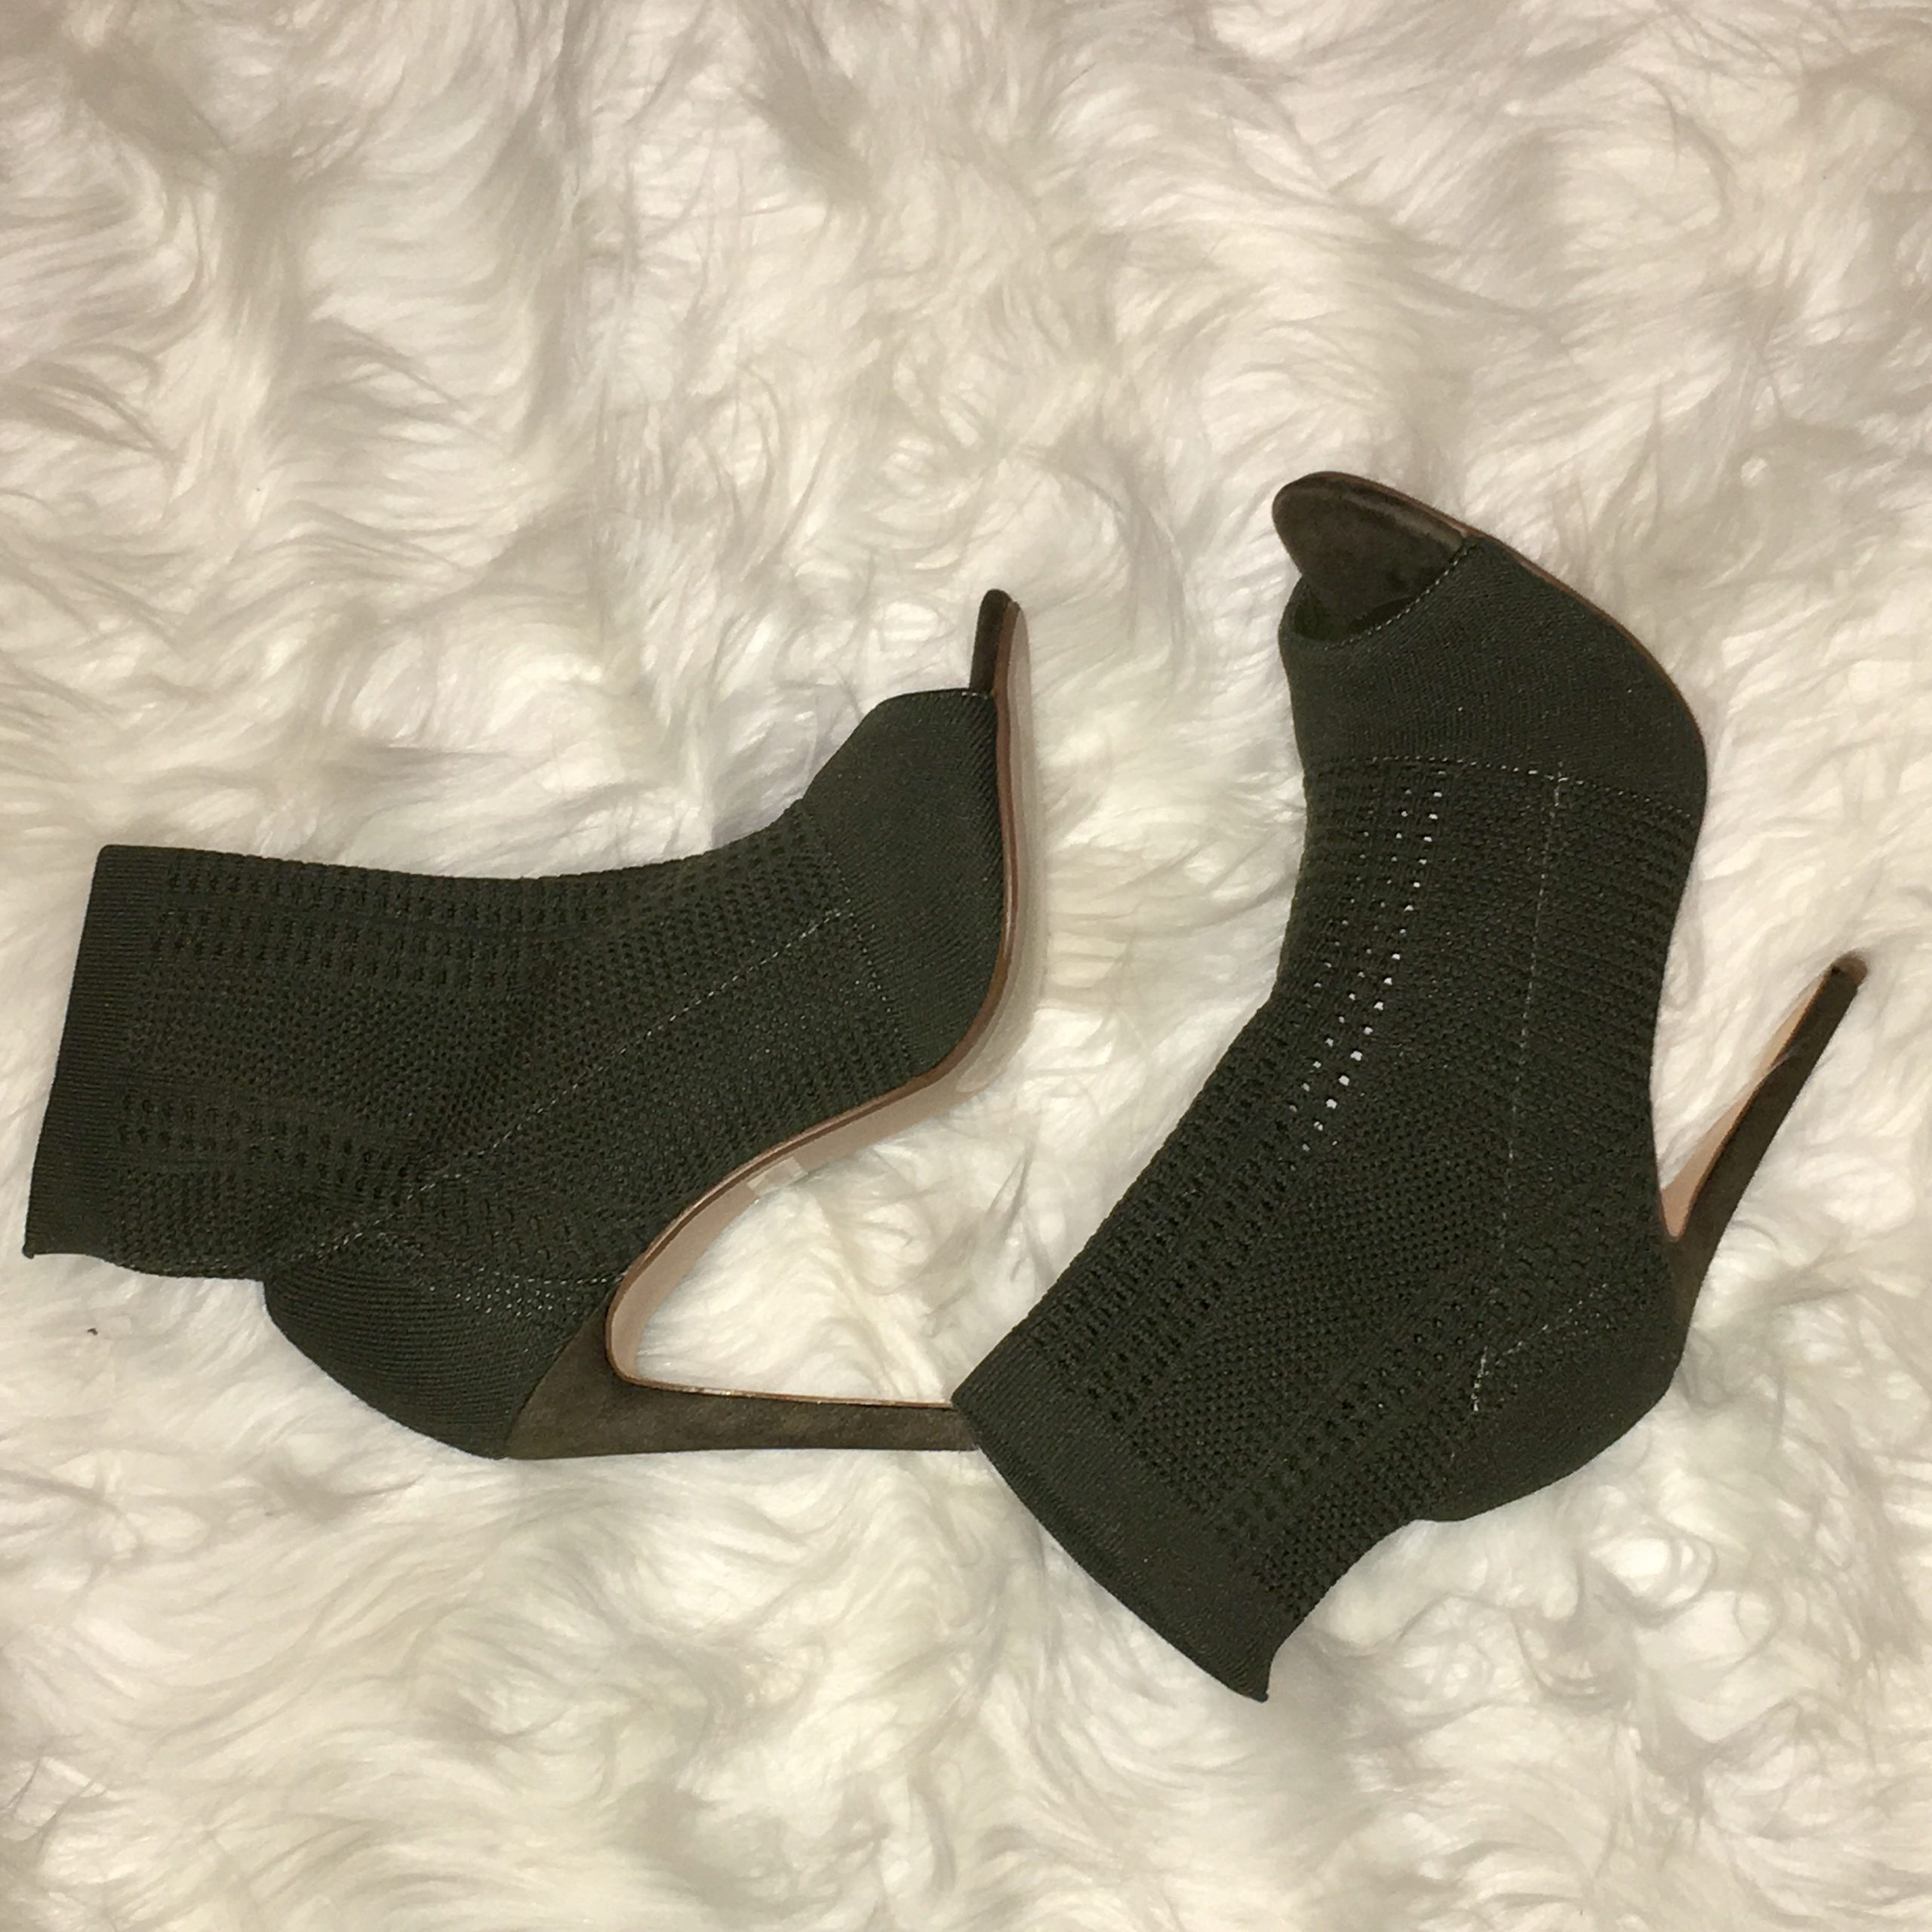 Another Pair of Shoes Cape Robbin Elane